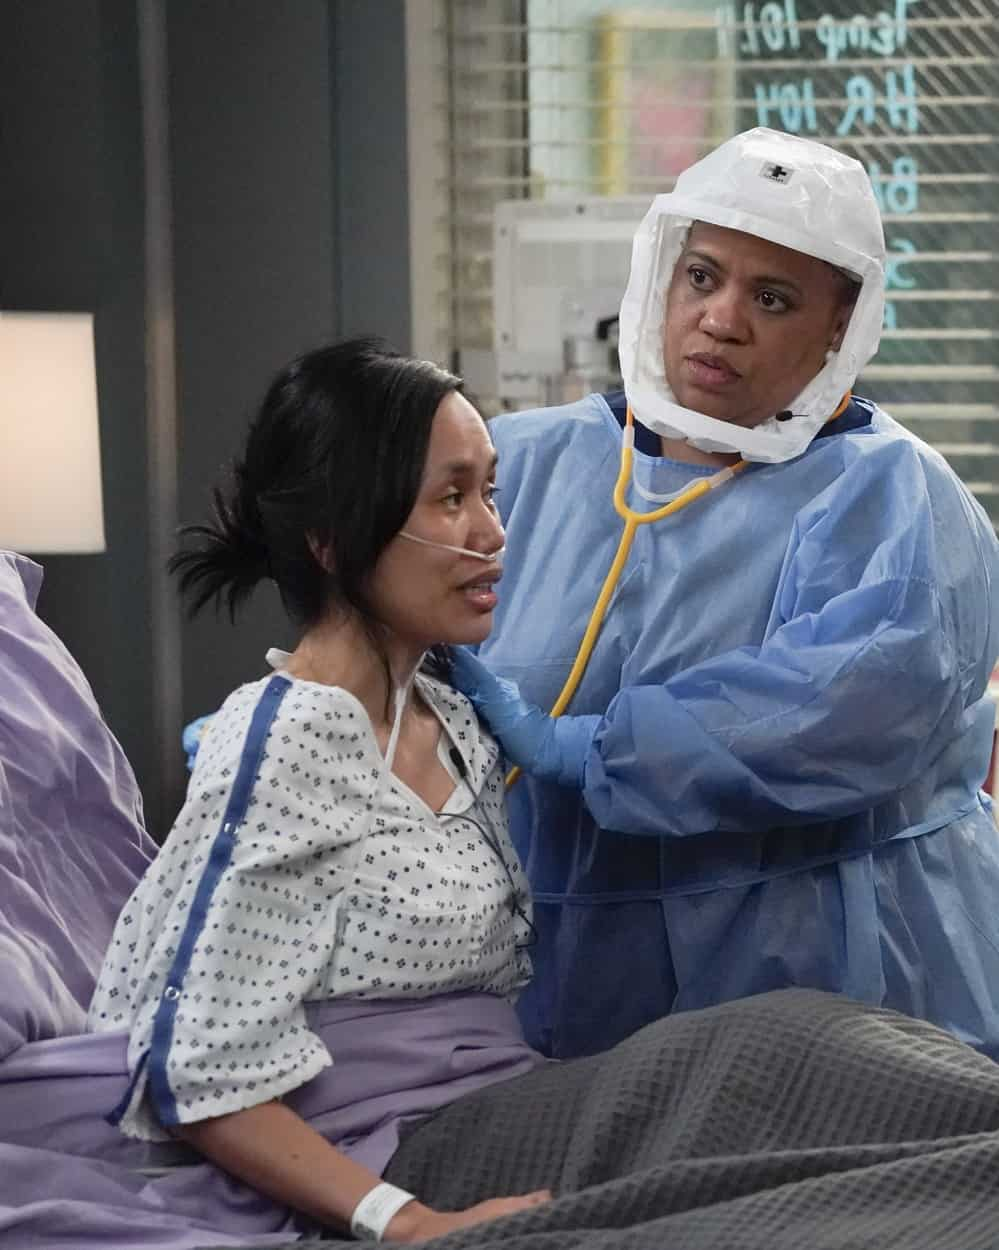 """GREY'S ANATOMY Season 17 Episode 17 - """"Someone Saved My Life Tonight"""" –  It's wedding day for Maggie and Winston. Meanwhile, Meredith takes on a new role at the hospital, and Jo makes a life-changing decision on the season finale of """"Grey's Anatomy,"""" THURSDAY, JUNE 3 (9:00-10:01 p.m. EDT), on ABC. (ABC/Richard Cartwright) CHANDRA WILSON"""